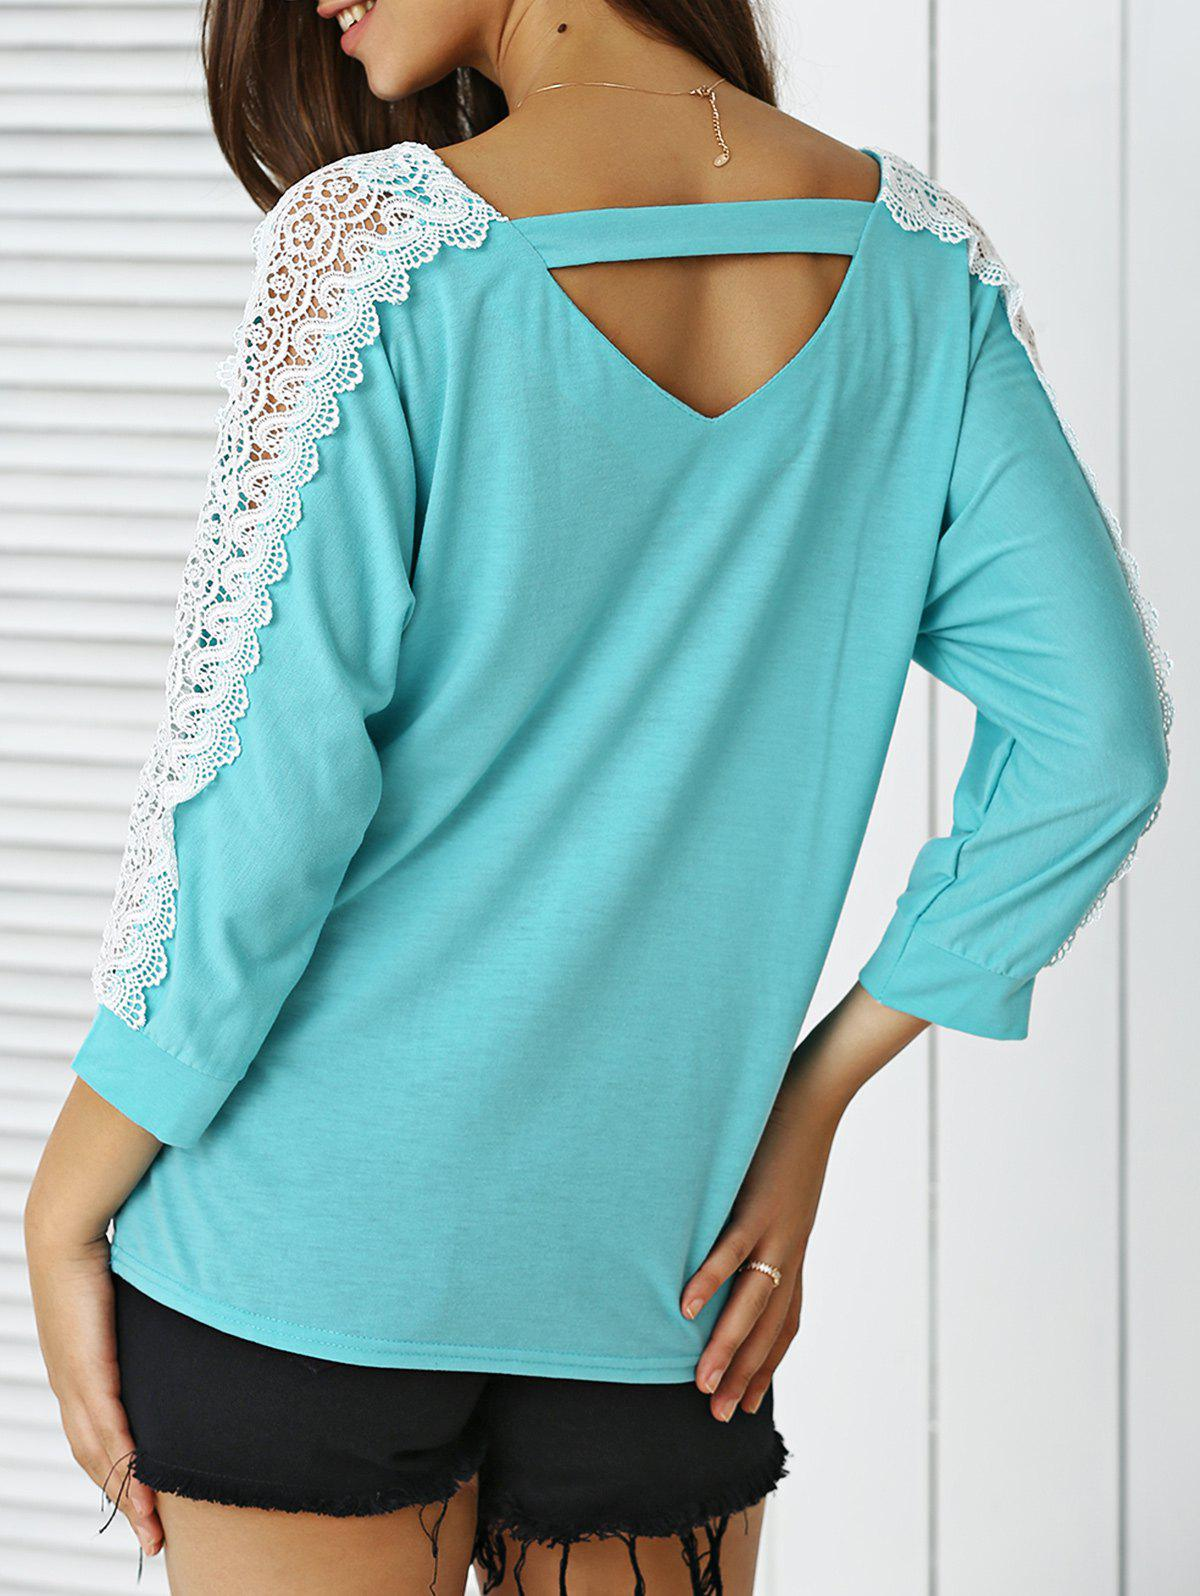 V-Neck Lace Applique Cut Out Blouse - LAKE BLUE M